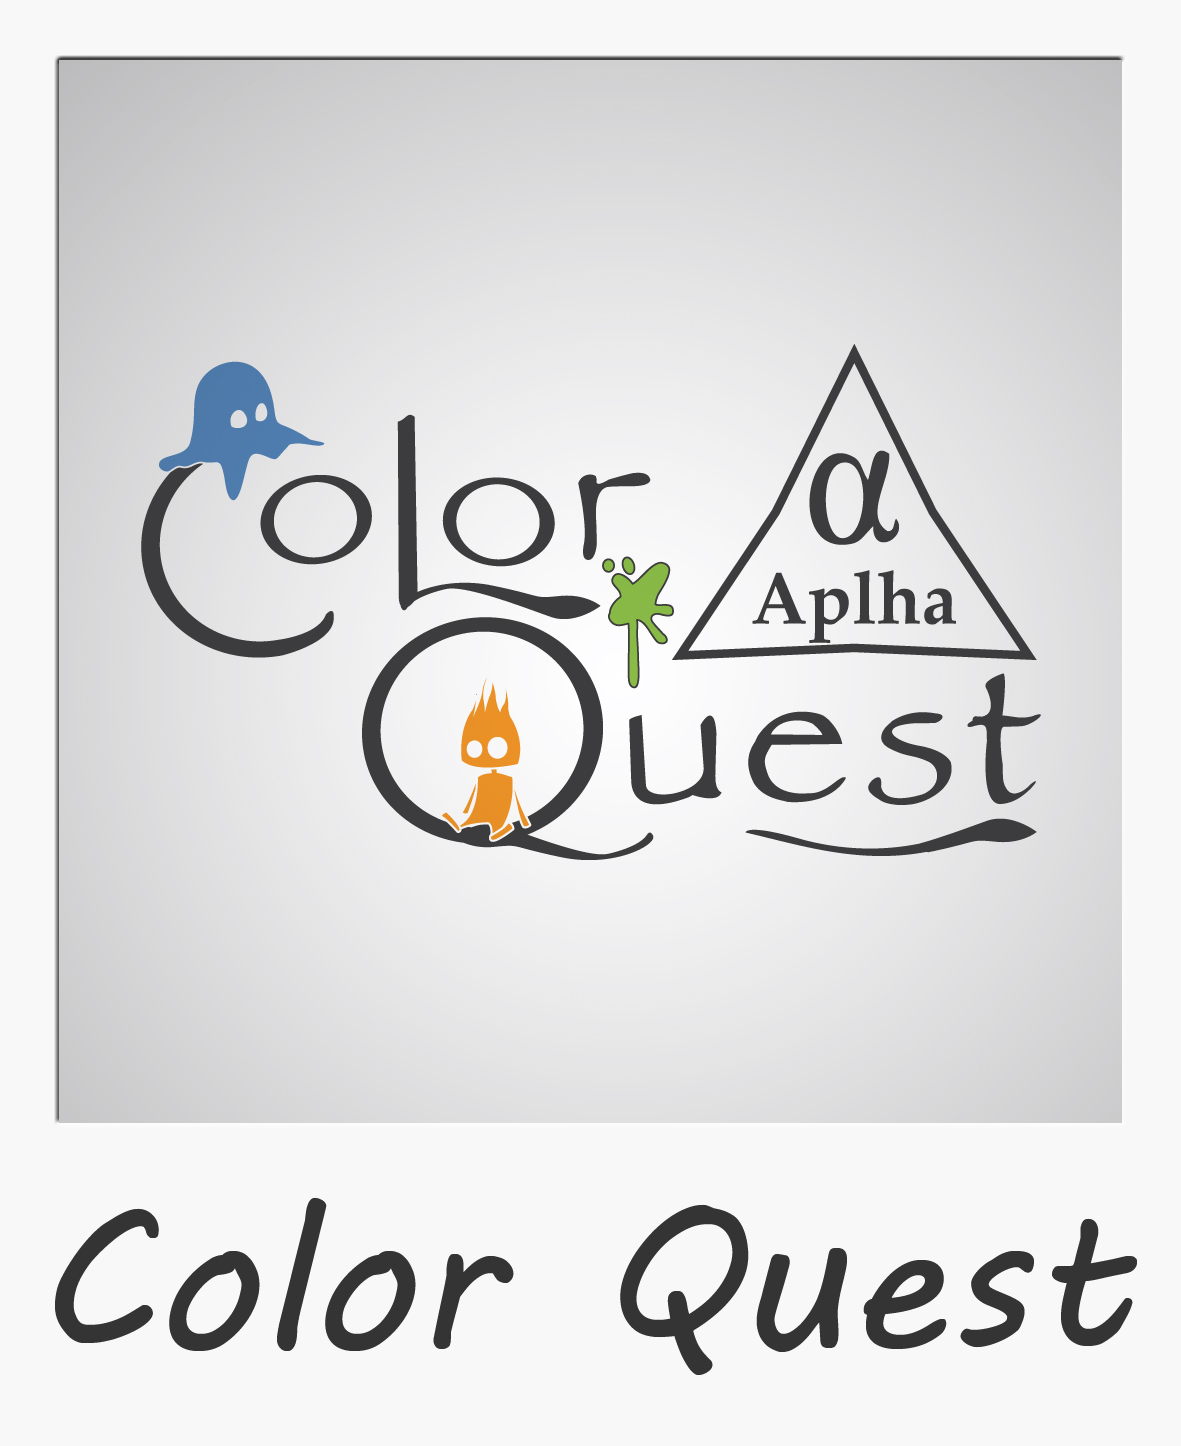 Color Quest Alpha news